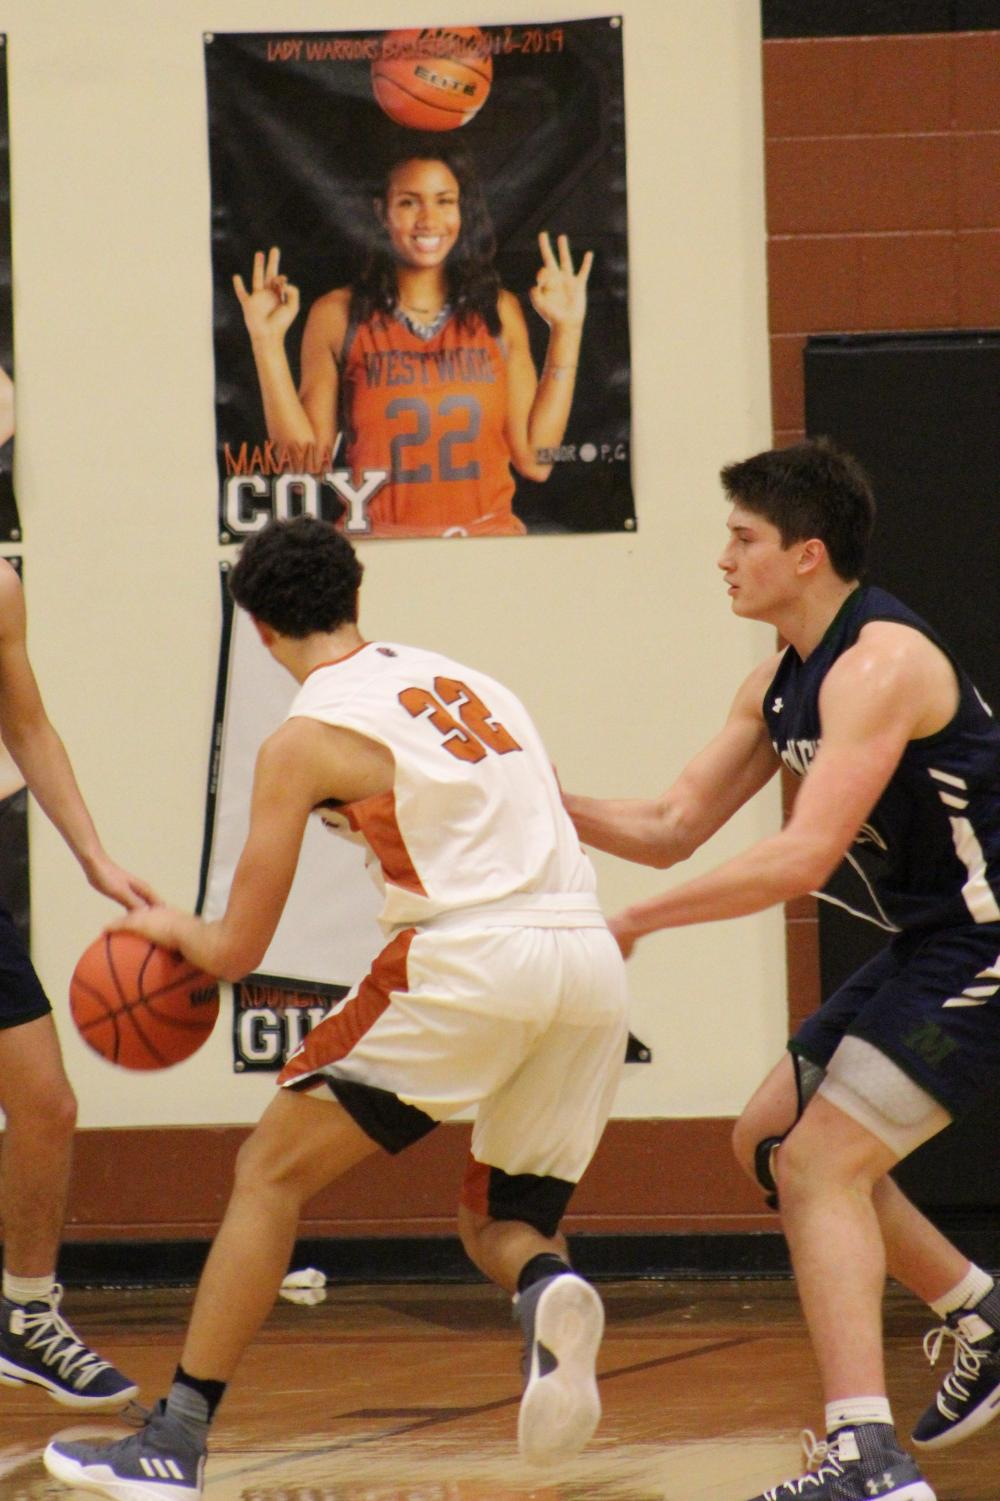 Varsity+Boys%27+Basketball+Doubles+Up+McNeil+in+46-23+Rout